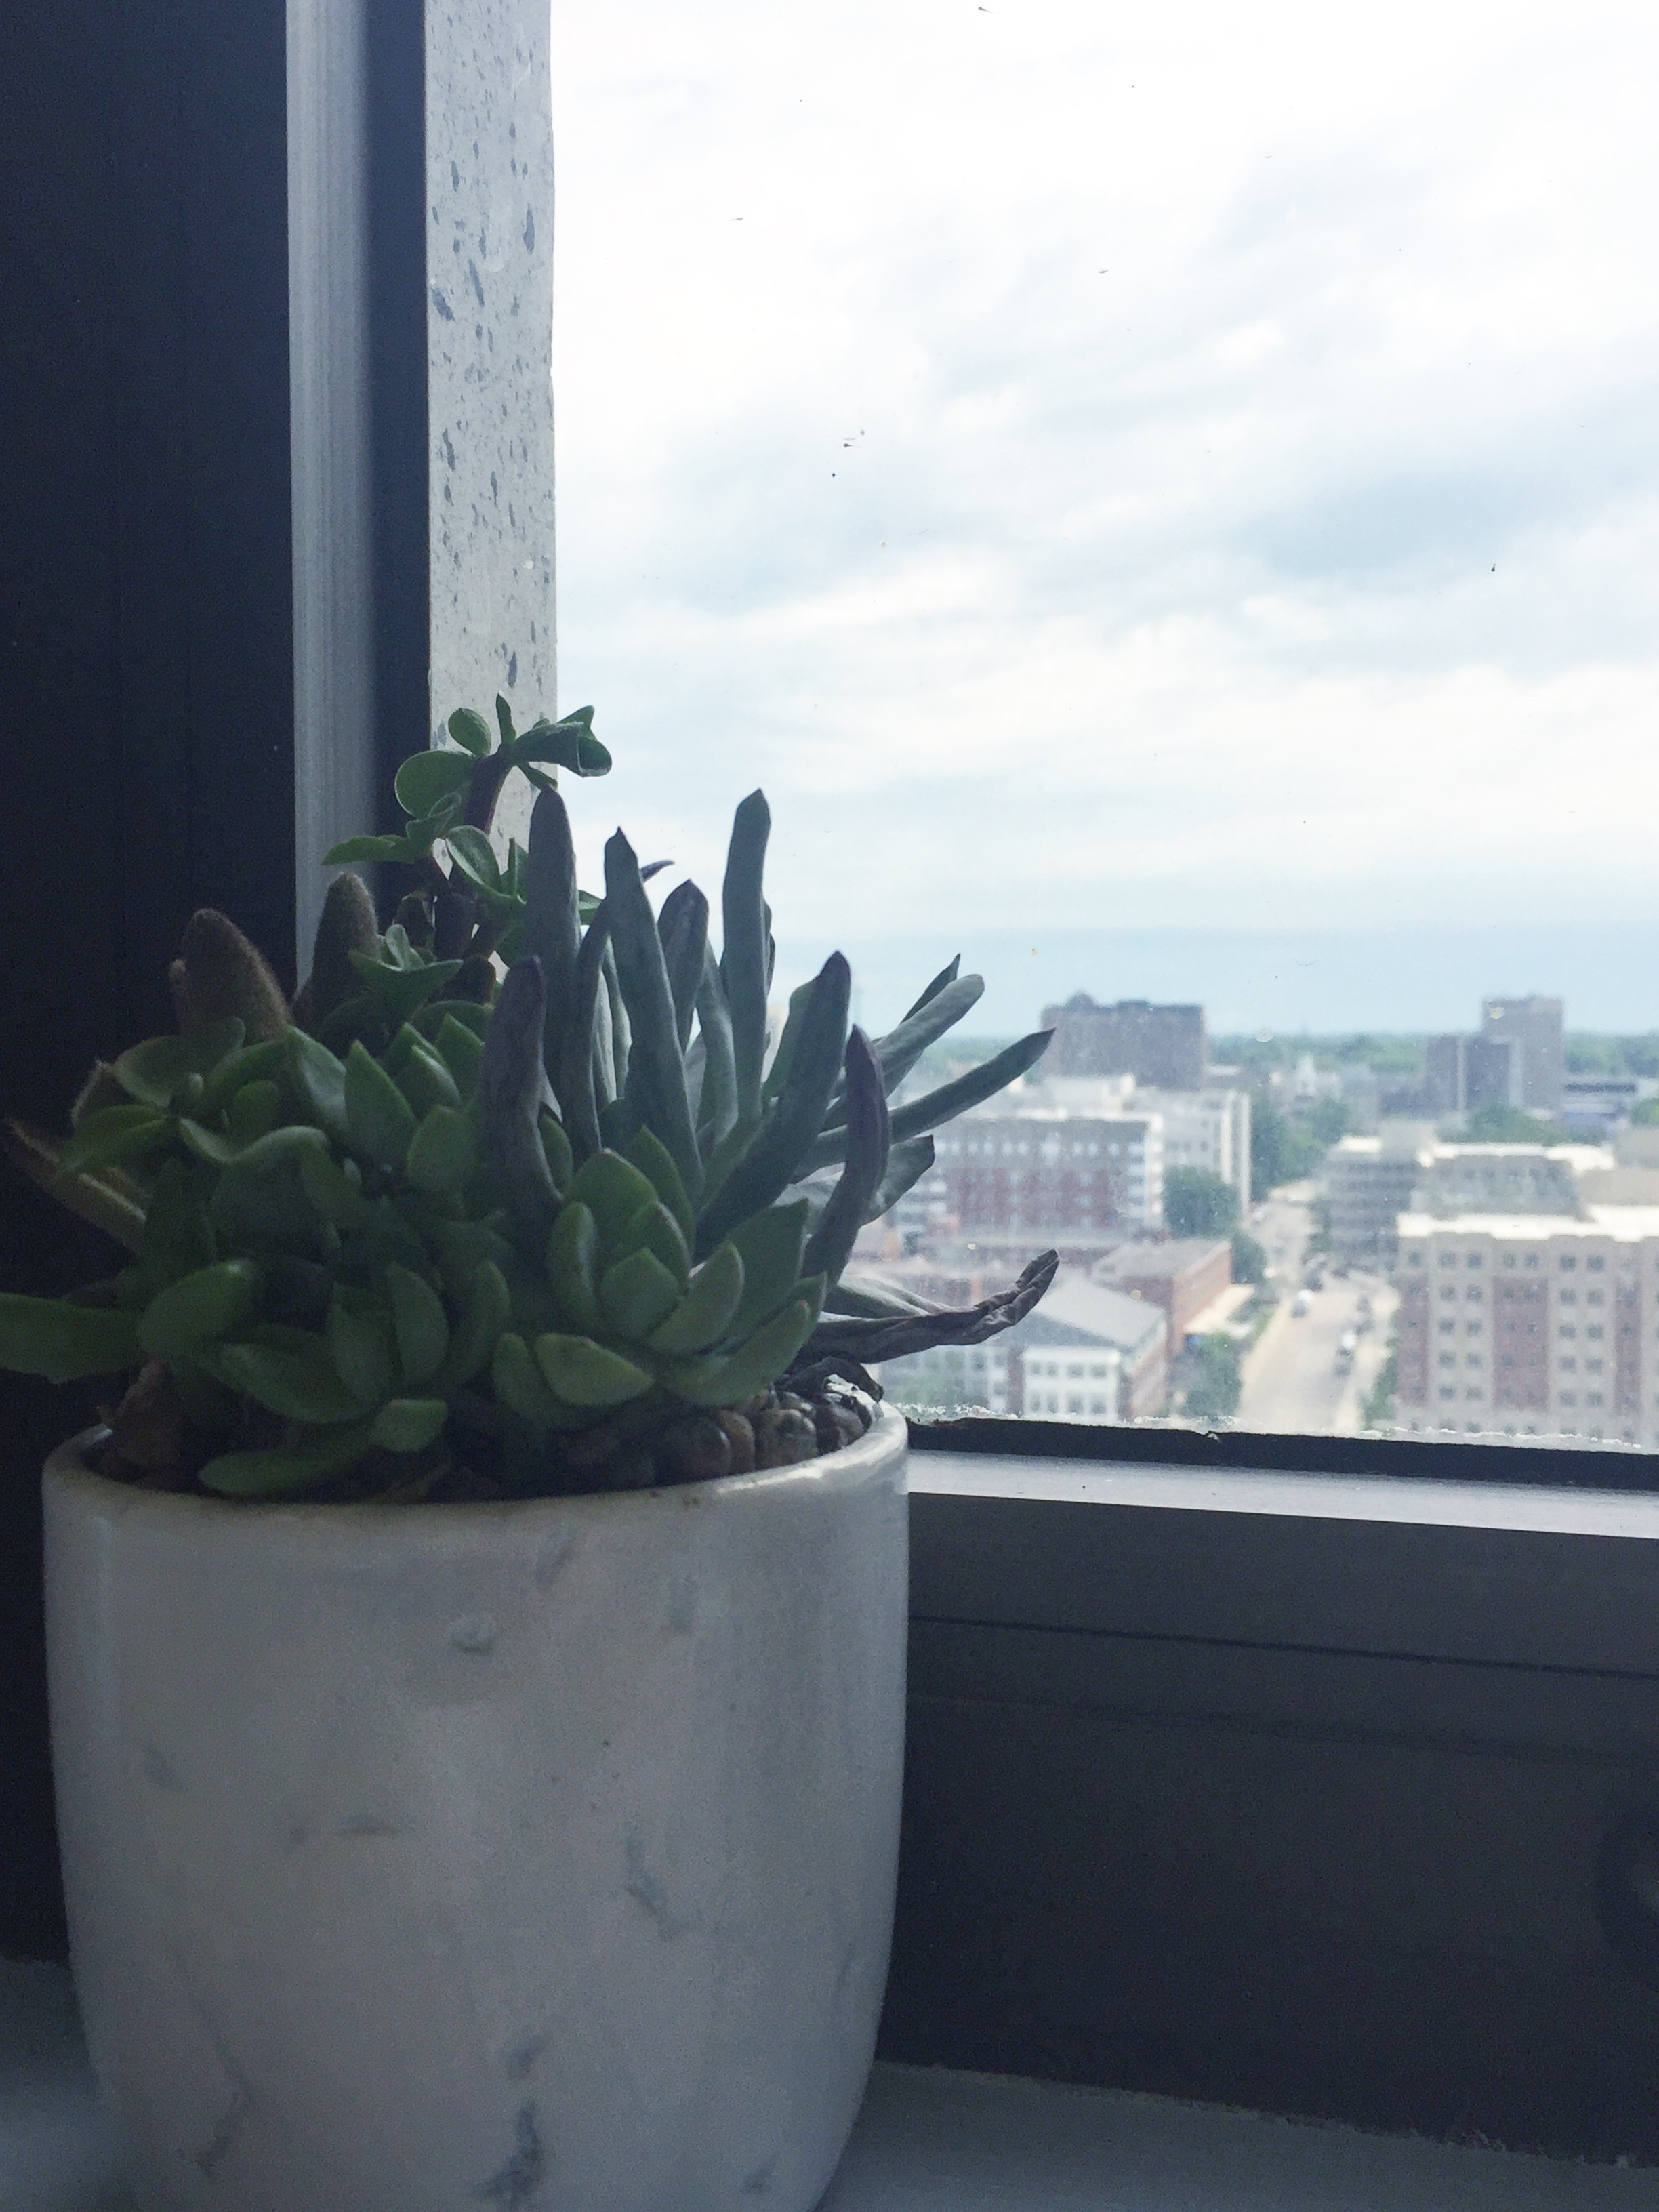 Office succulent with some shriveled up fronds.